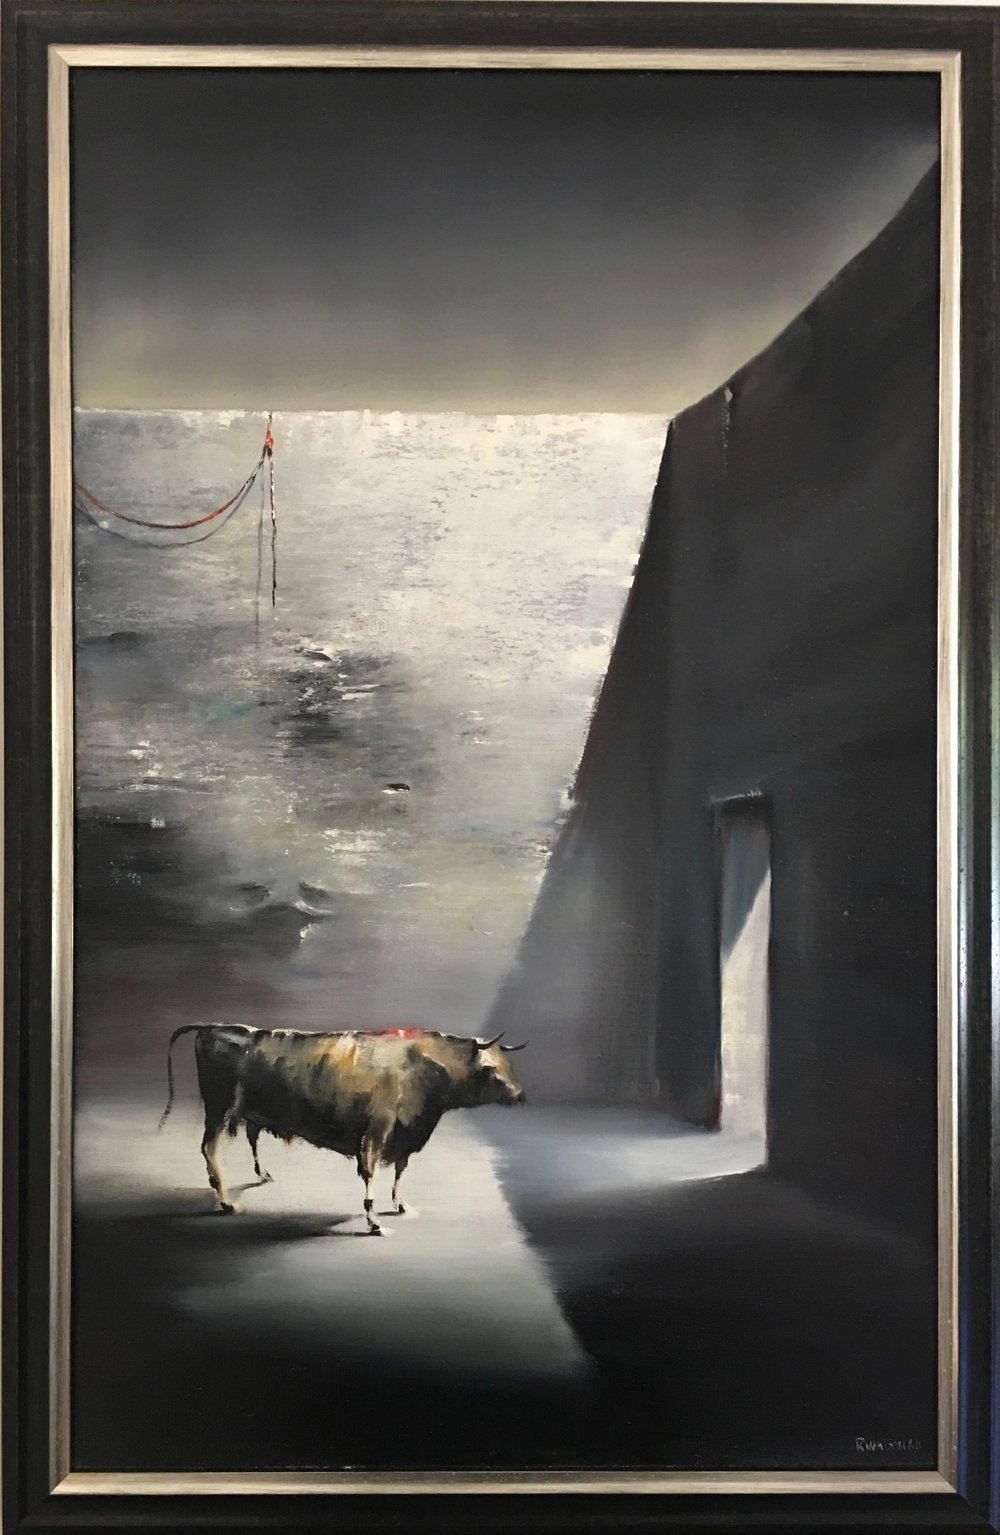 A black frame accented by a silver edge focuses the eye on the light surrounding the bull.